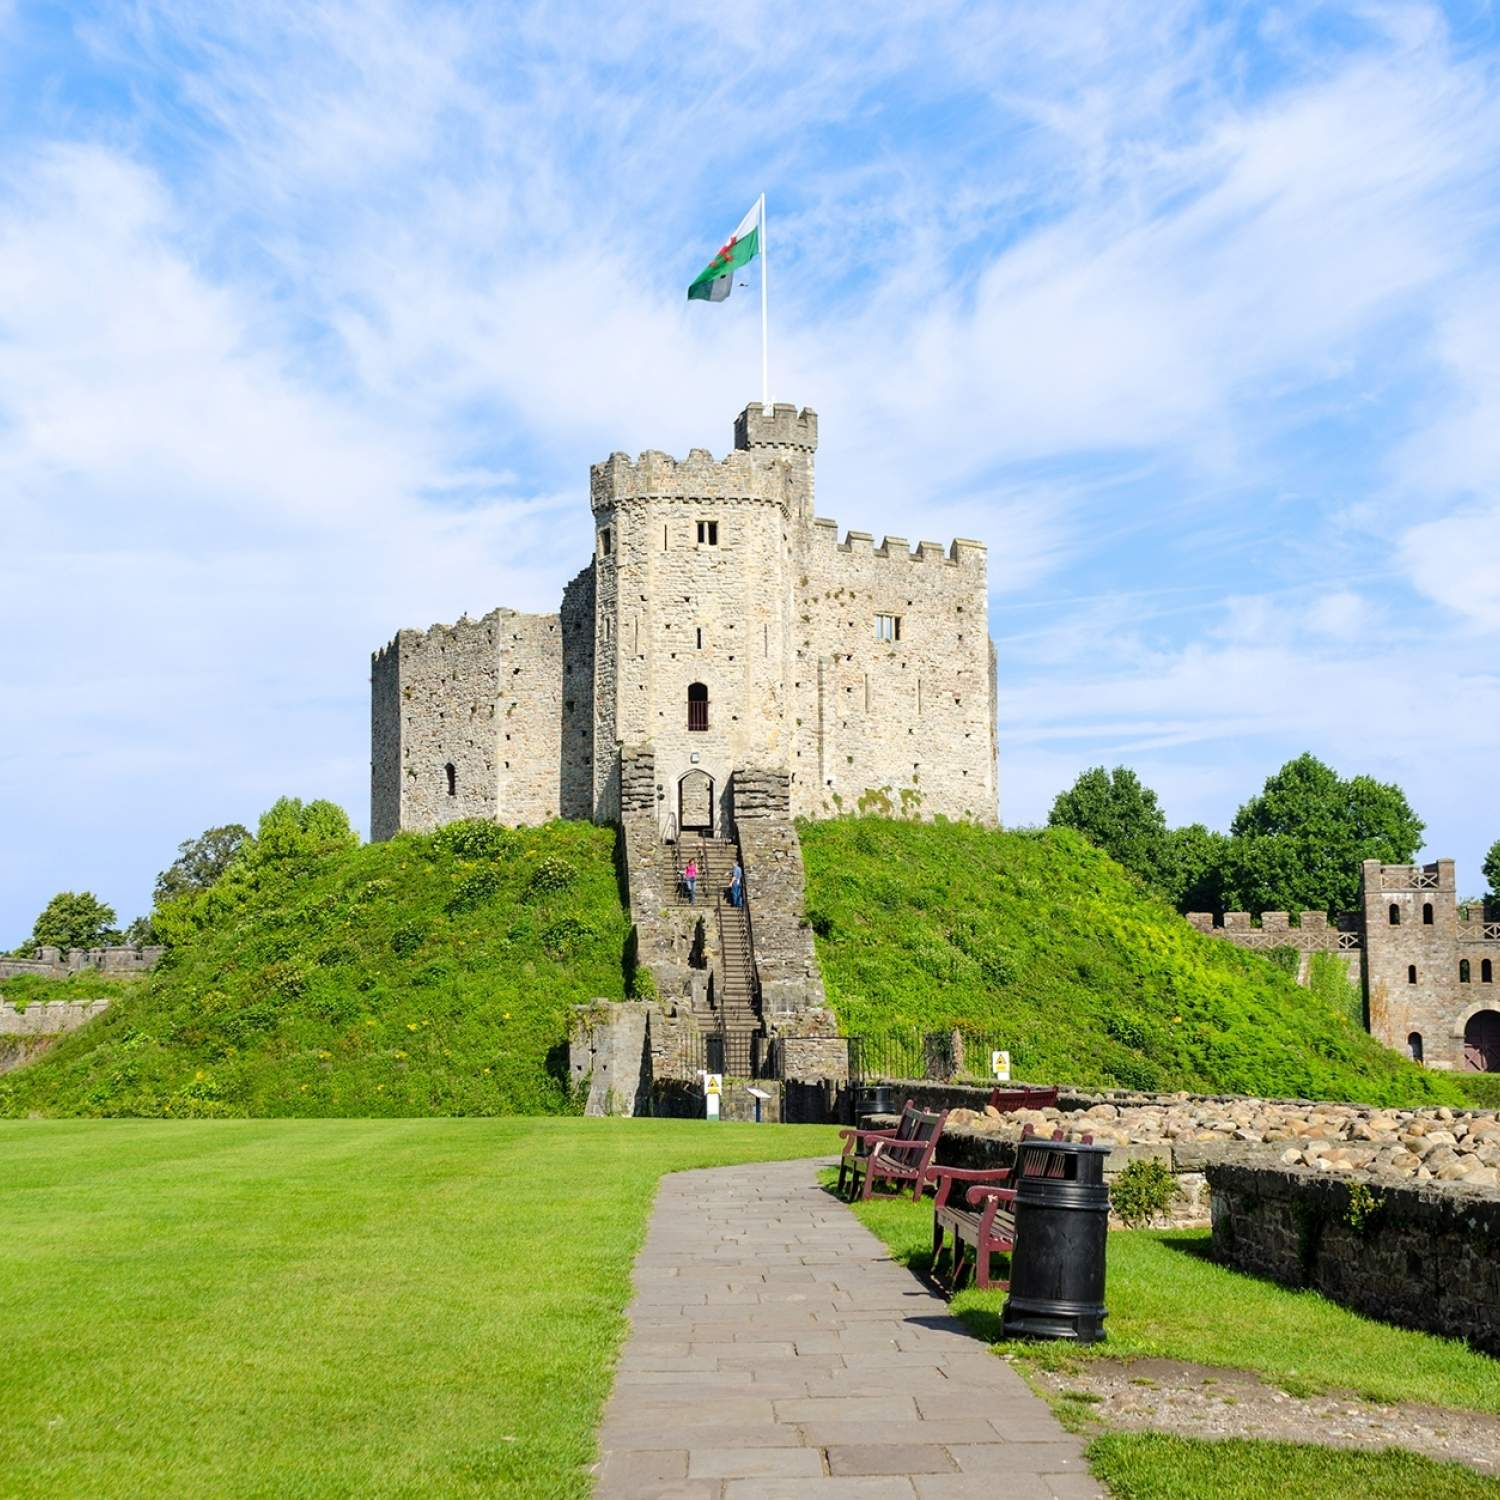 Exterior-of-Cardiff-Castle-Wales-United-Kingdom